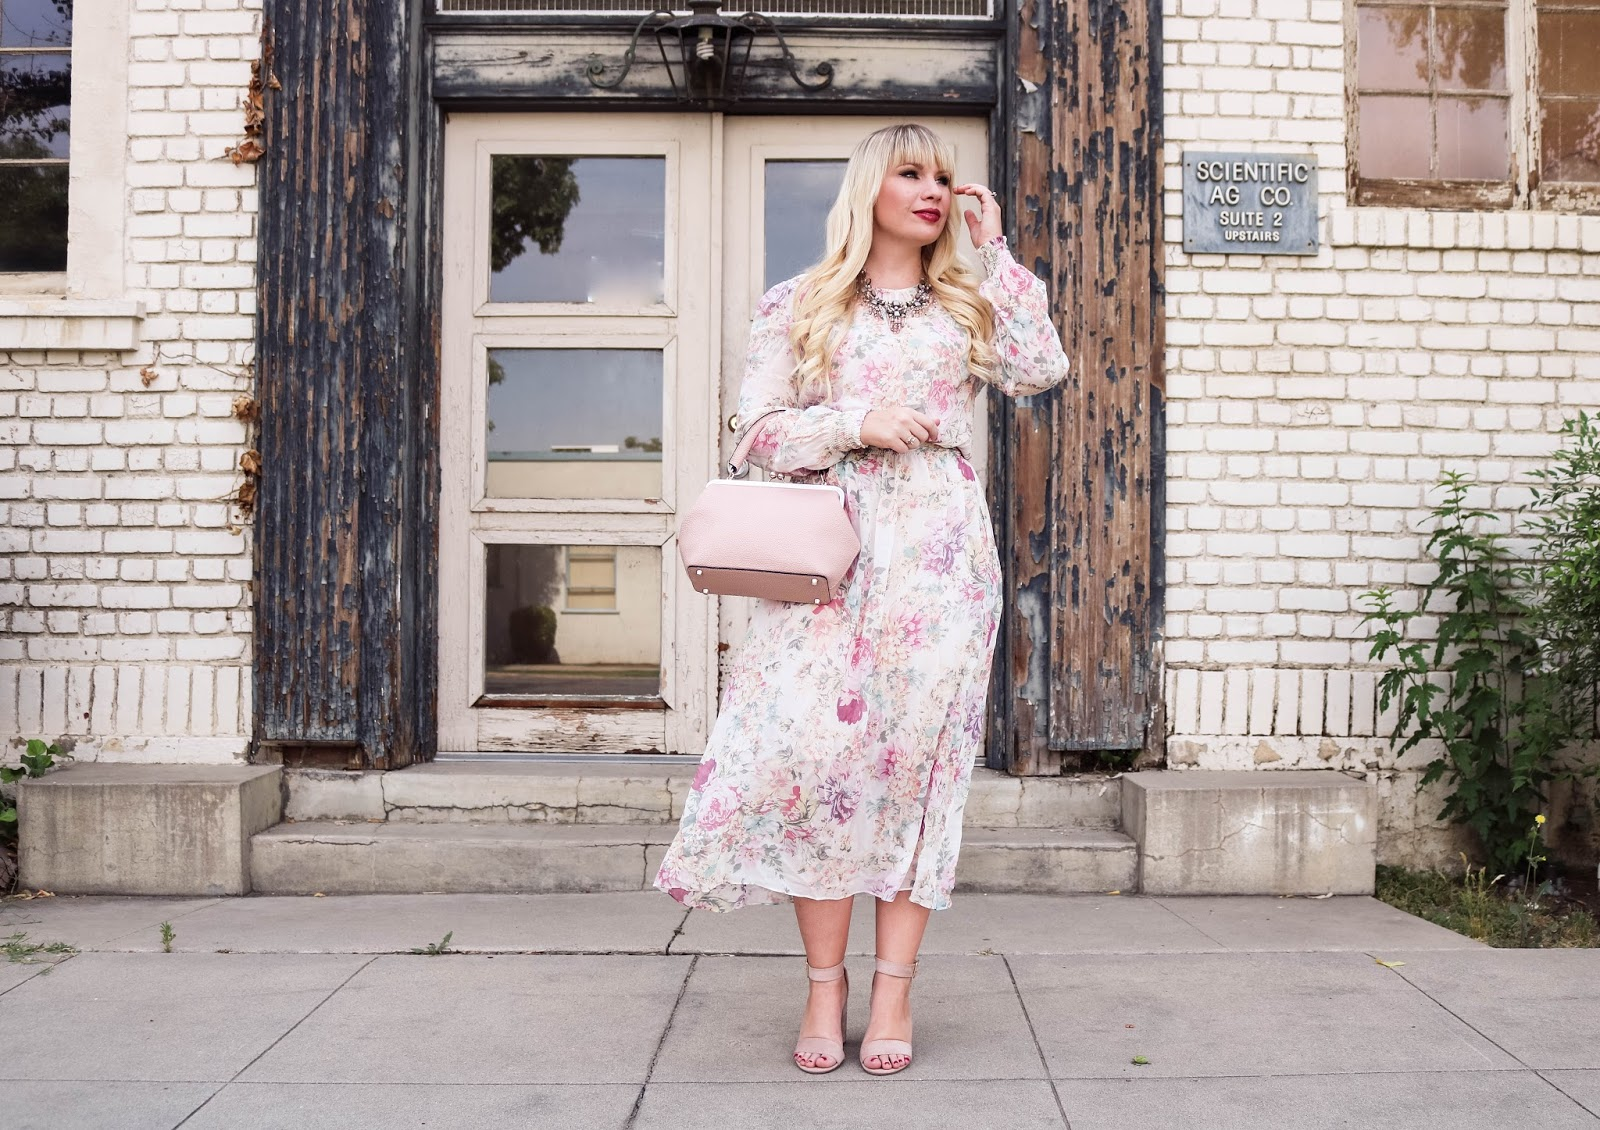 Blush floral Dress & JEMMA JoJo Handbag Review